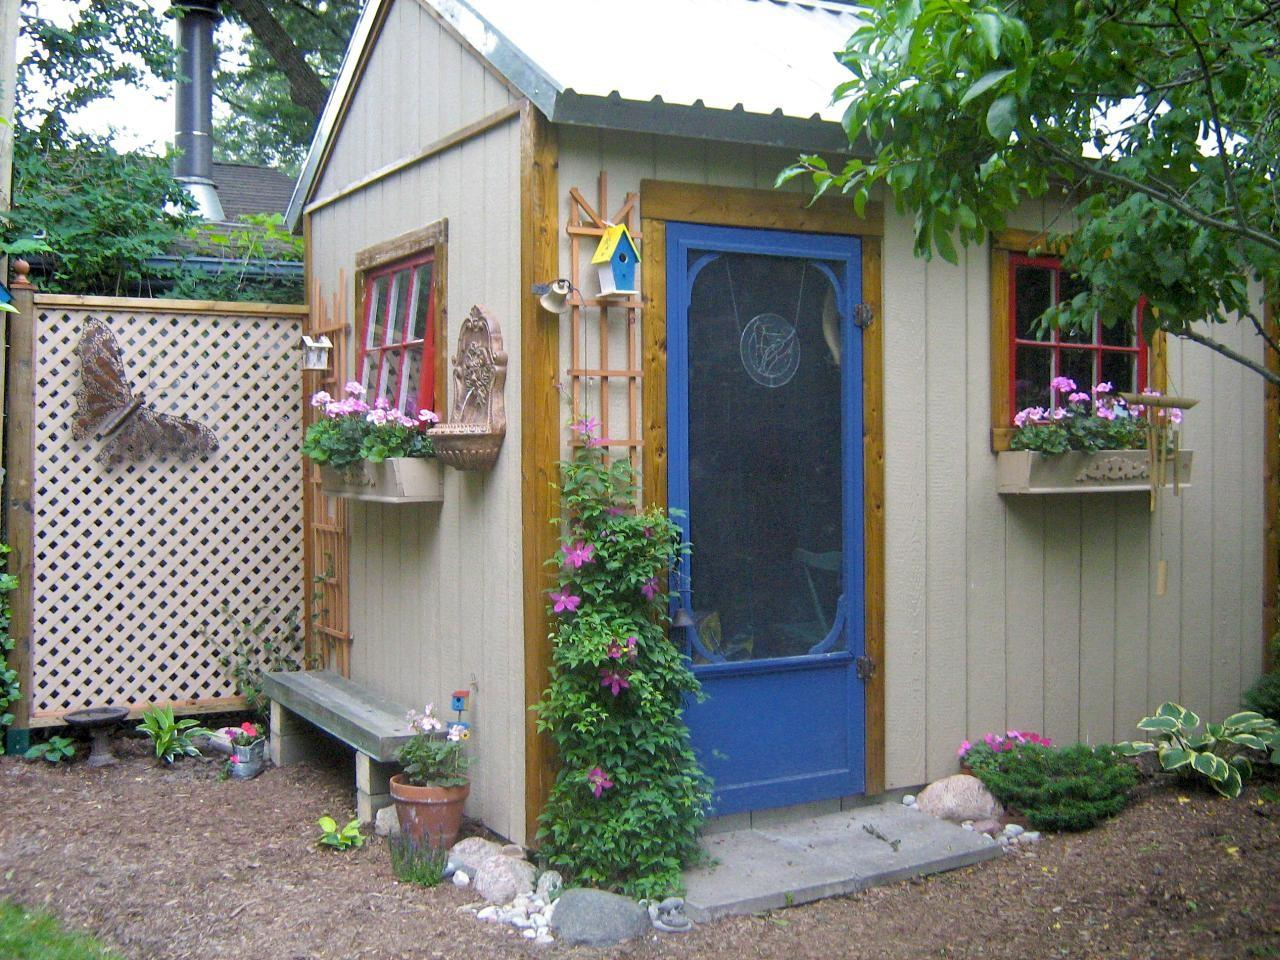 Garden Sheds They Never Looked Good Landscaping